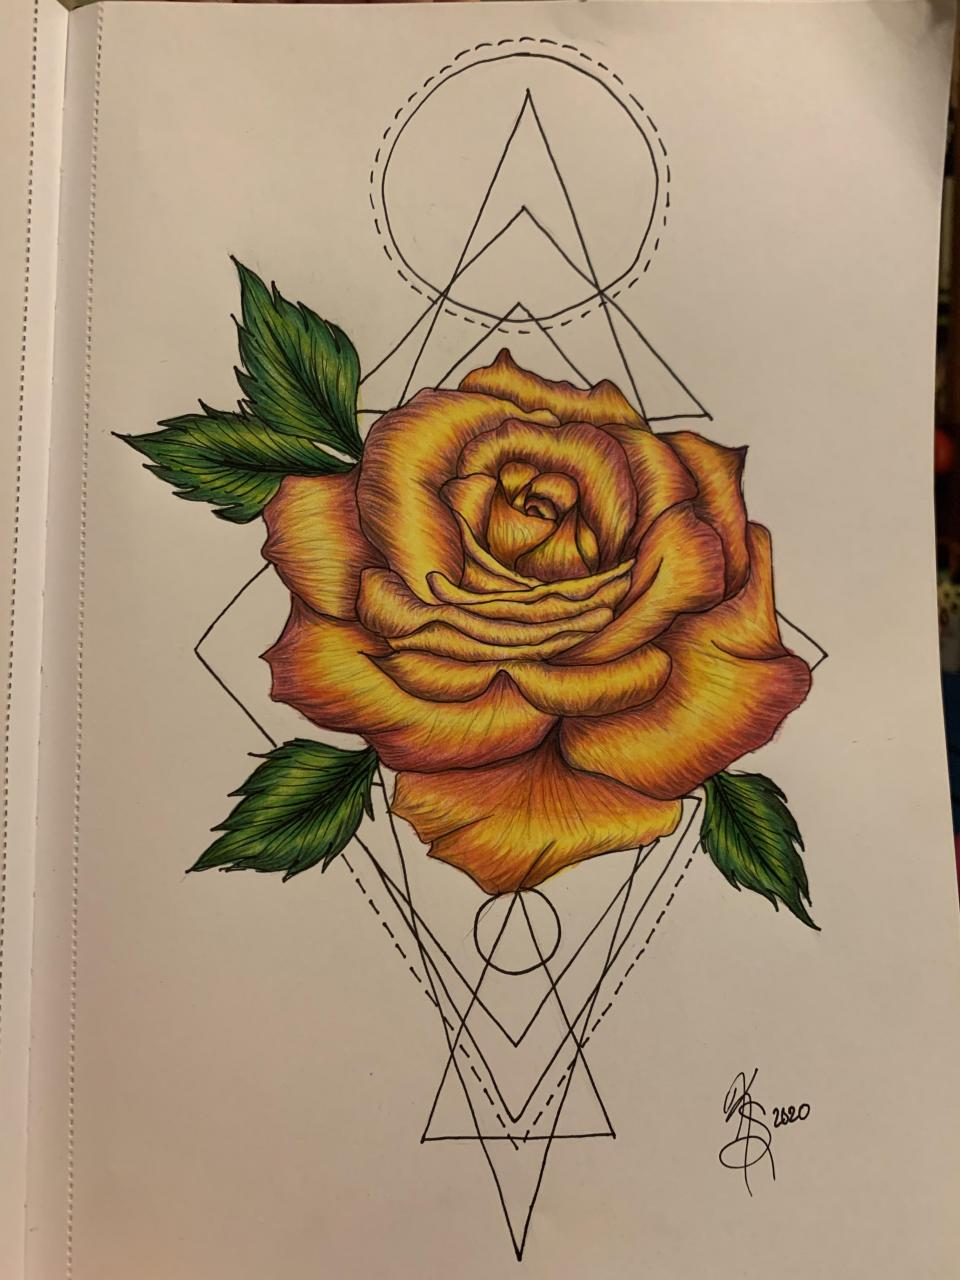 Geometric Rose design. I messed up on the bottom lines but I'm overall very happy with the turnout.